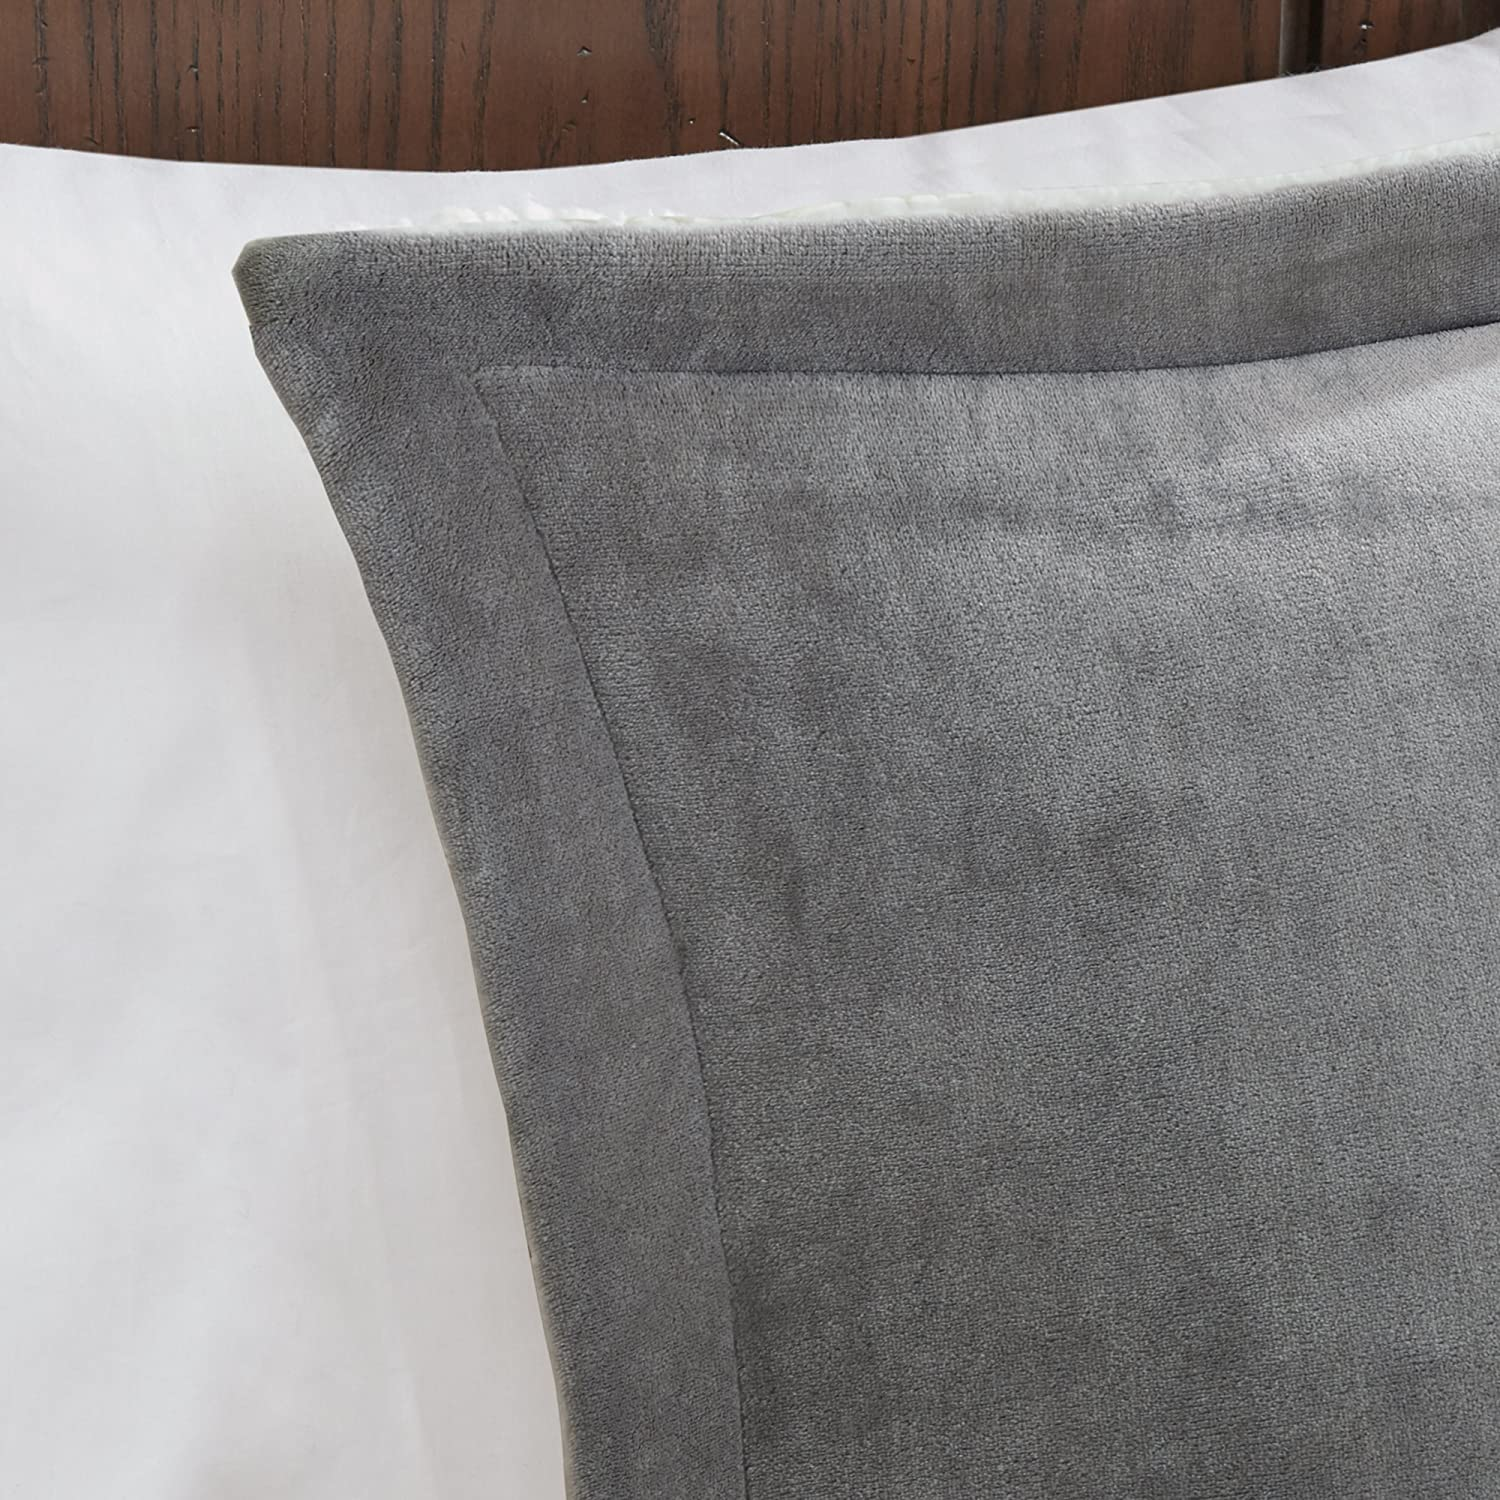 66236ede83 4 Pieces Bedding Sets Woolrich Alton Full/Queen Size Bed Comforter Set  Ivory Reversible Solid Grey ...